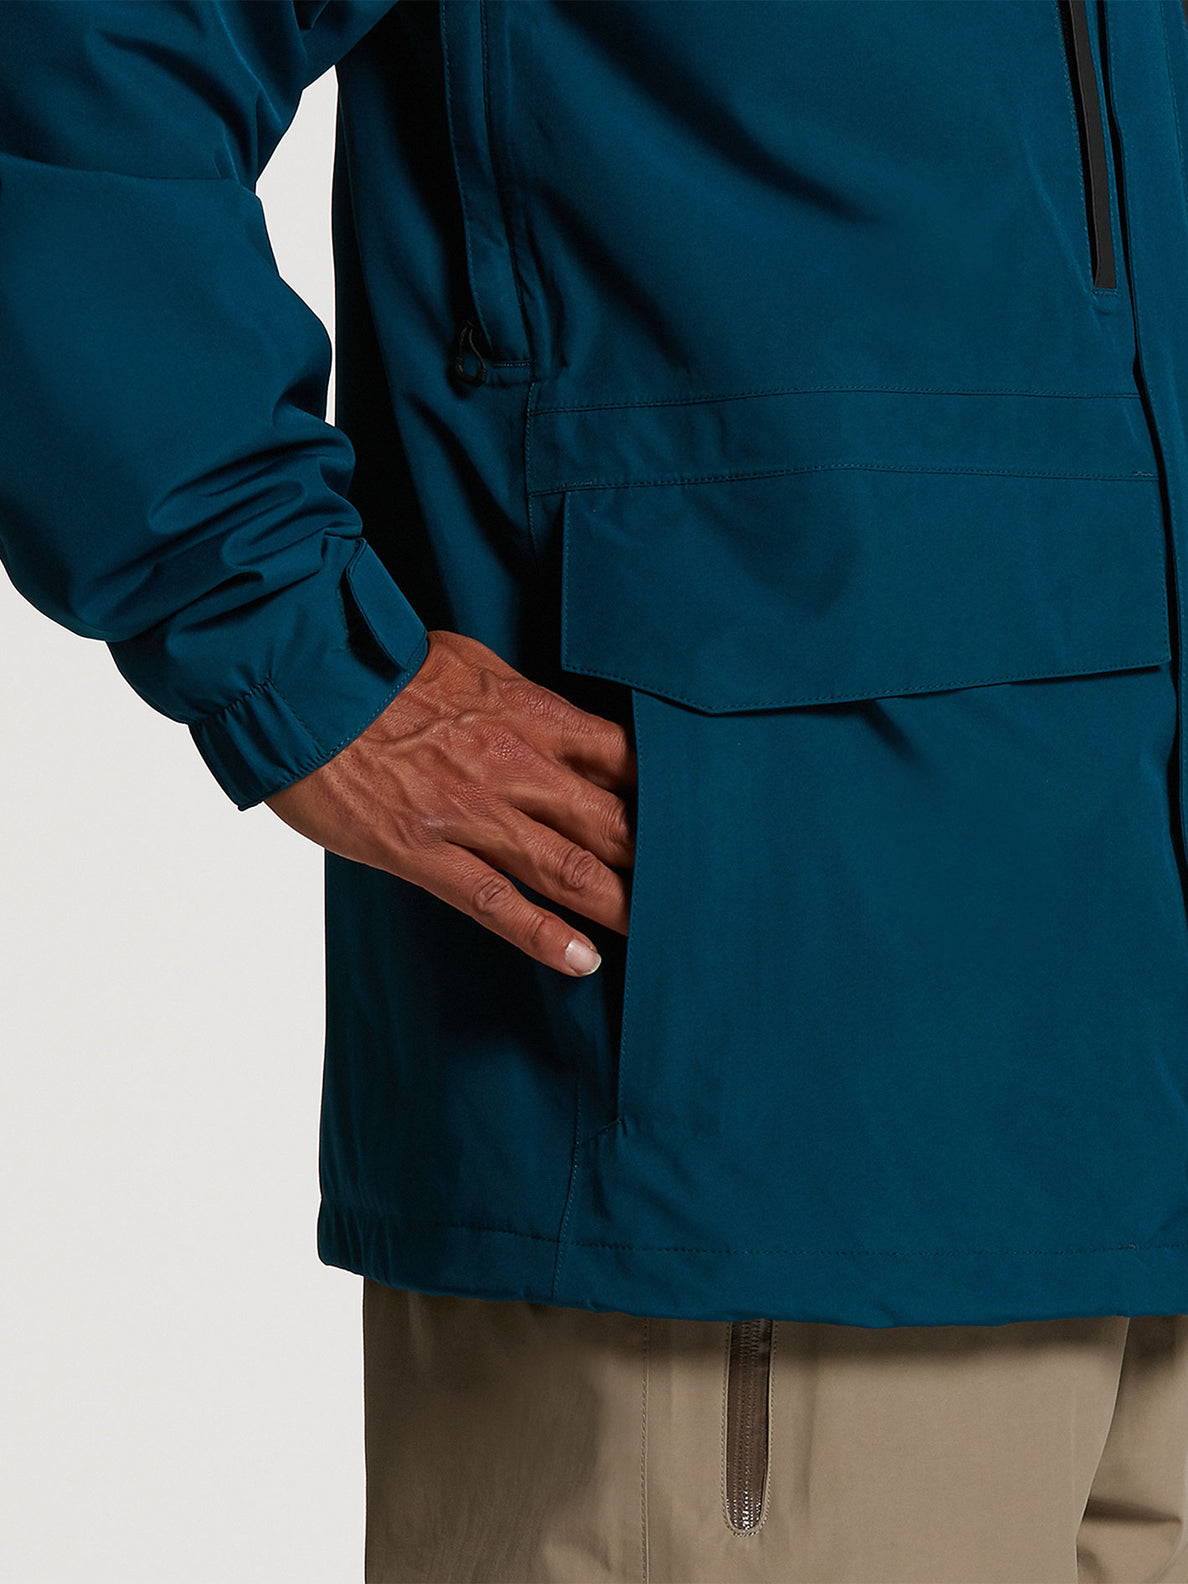 Mens Ten GORE-TEX Jacket - Blue (G0652116_BLU) [06]